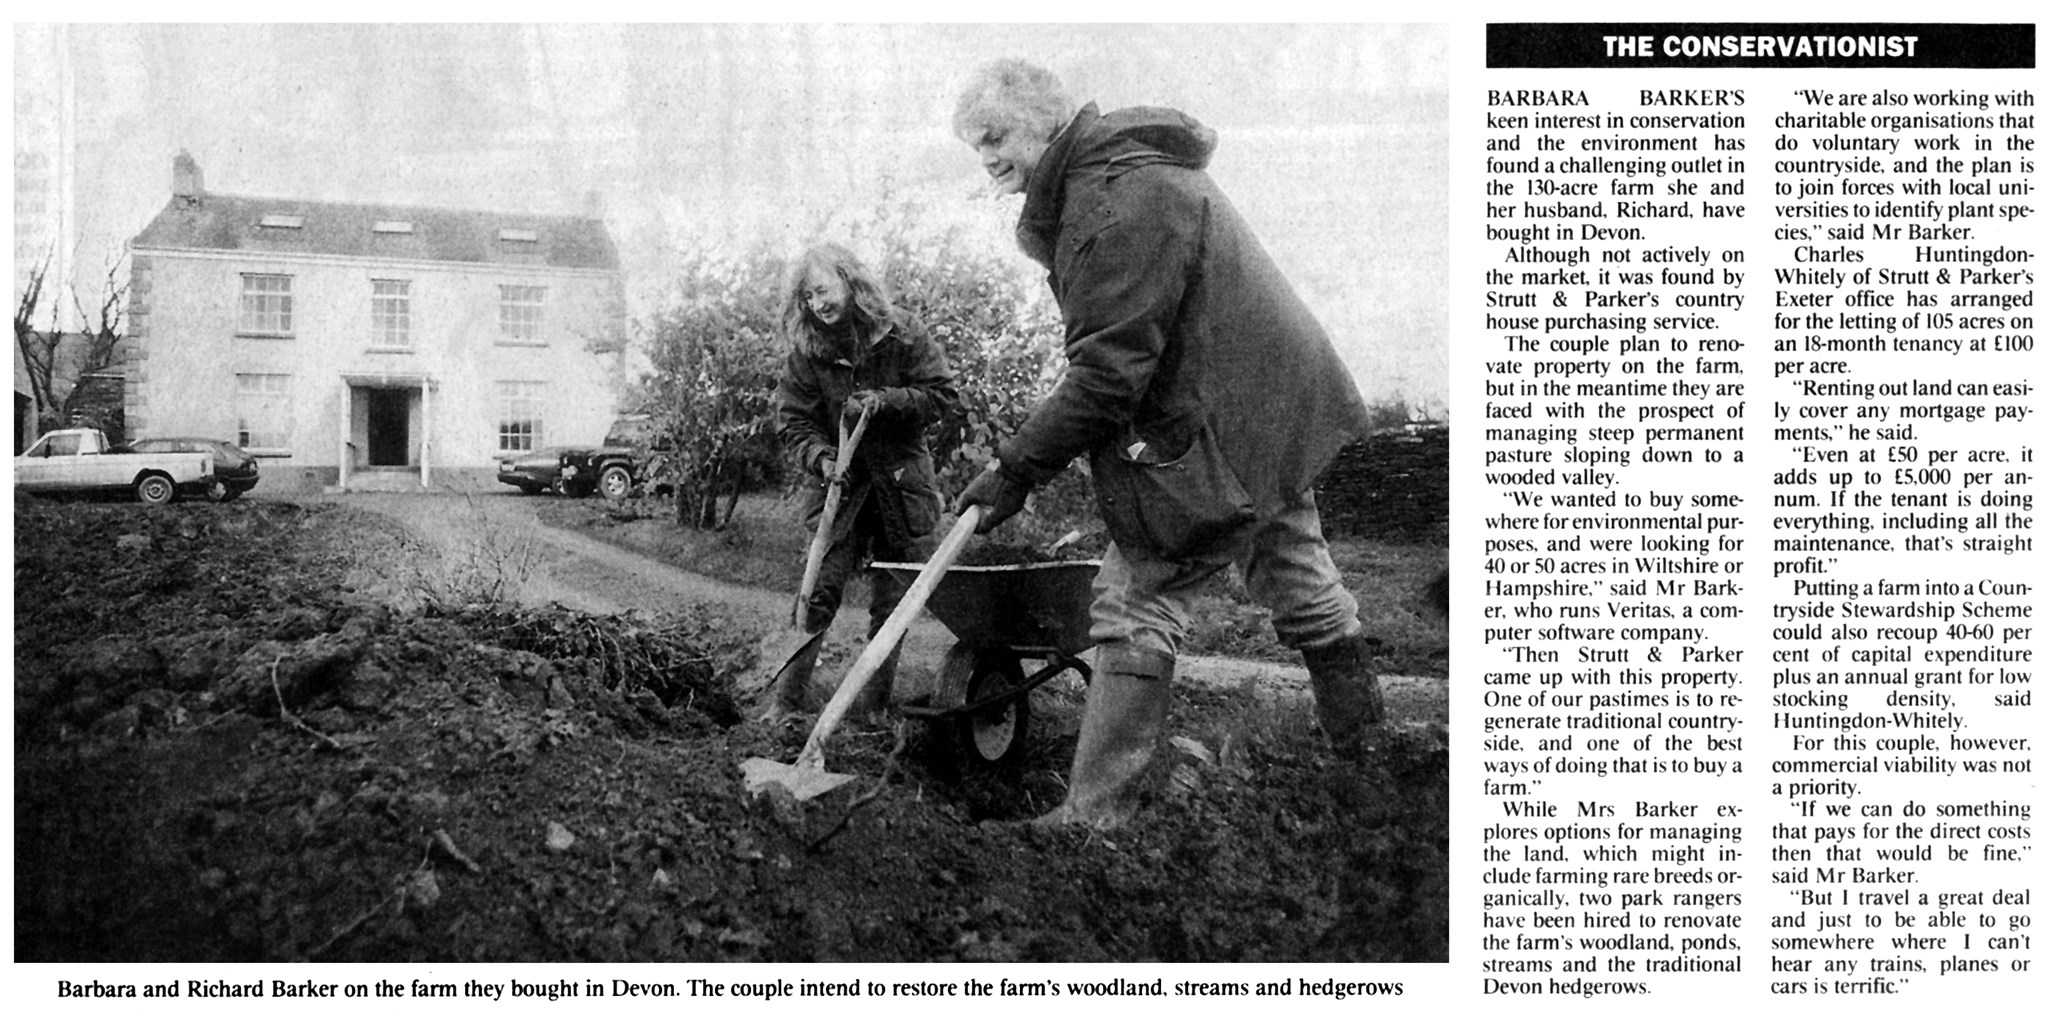 The Conservationists, Times Article 1999